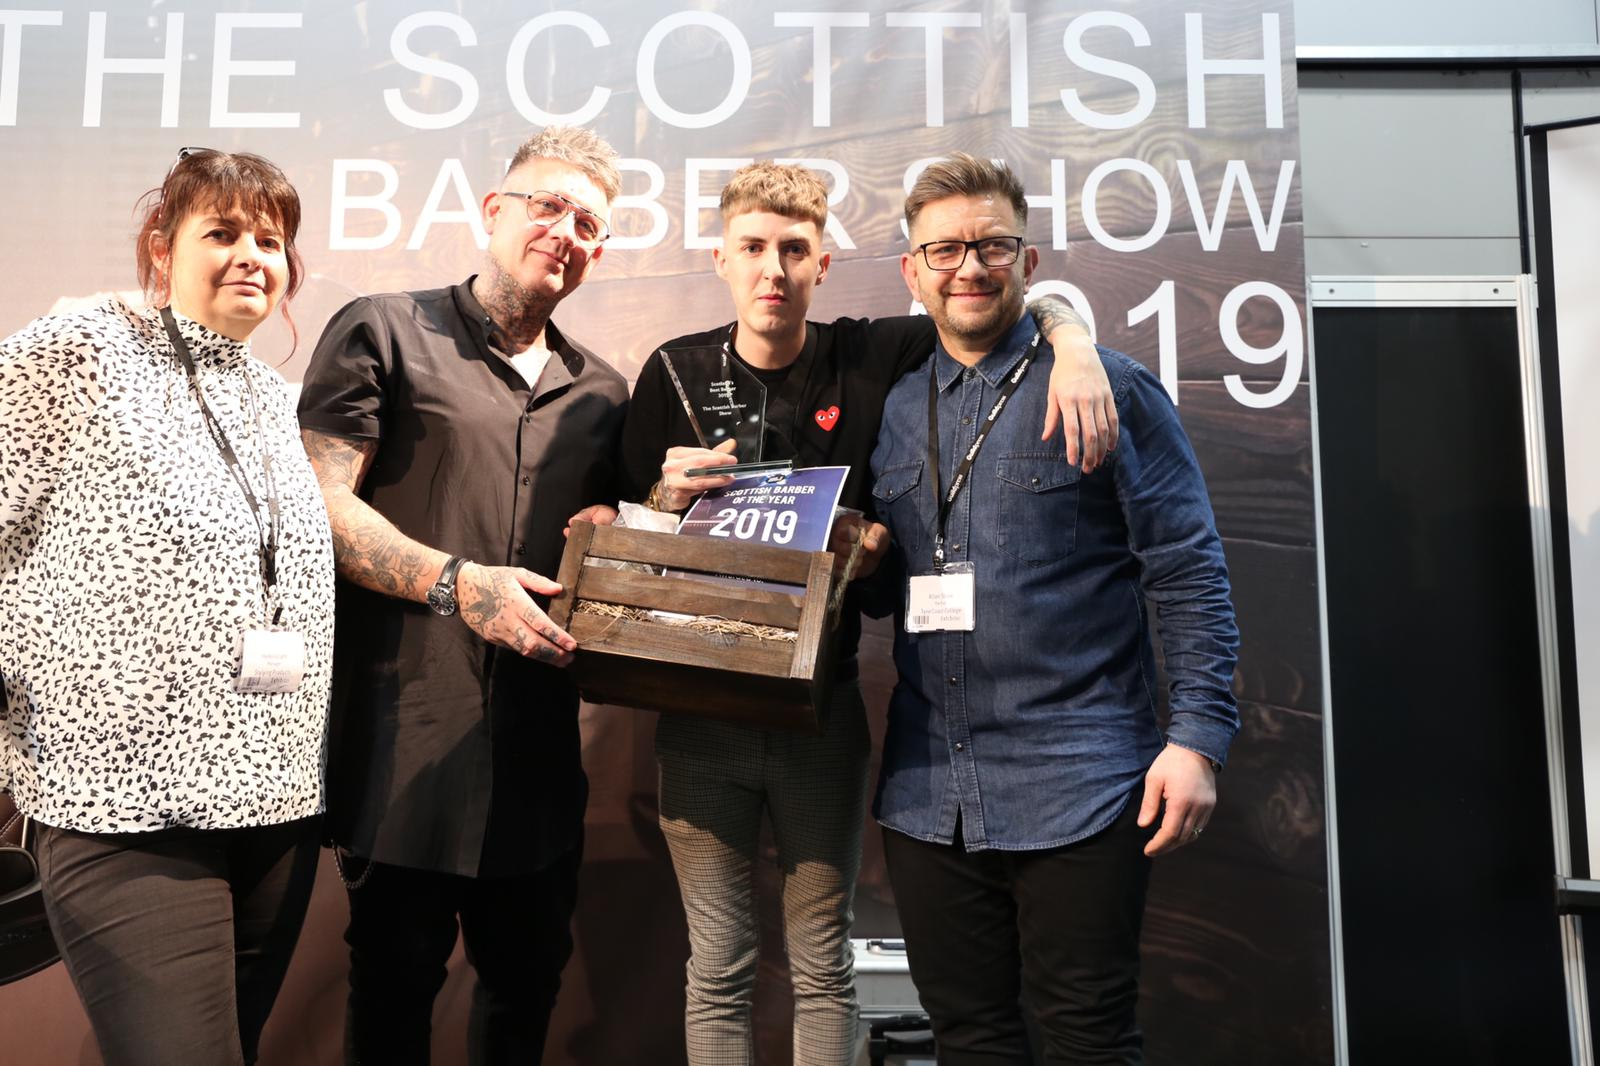 jJudges and winner of the Scottish Best Barber Competition